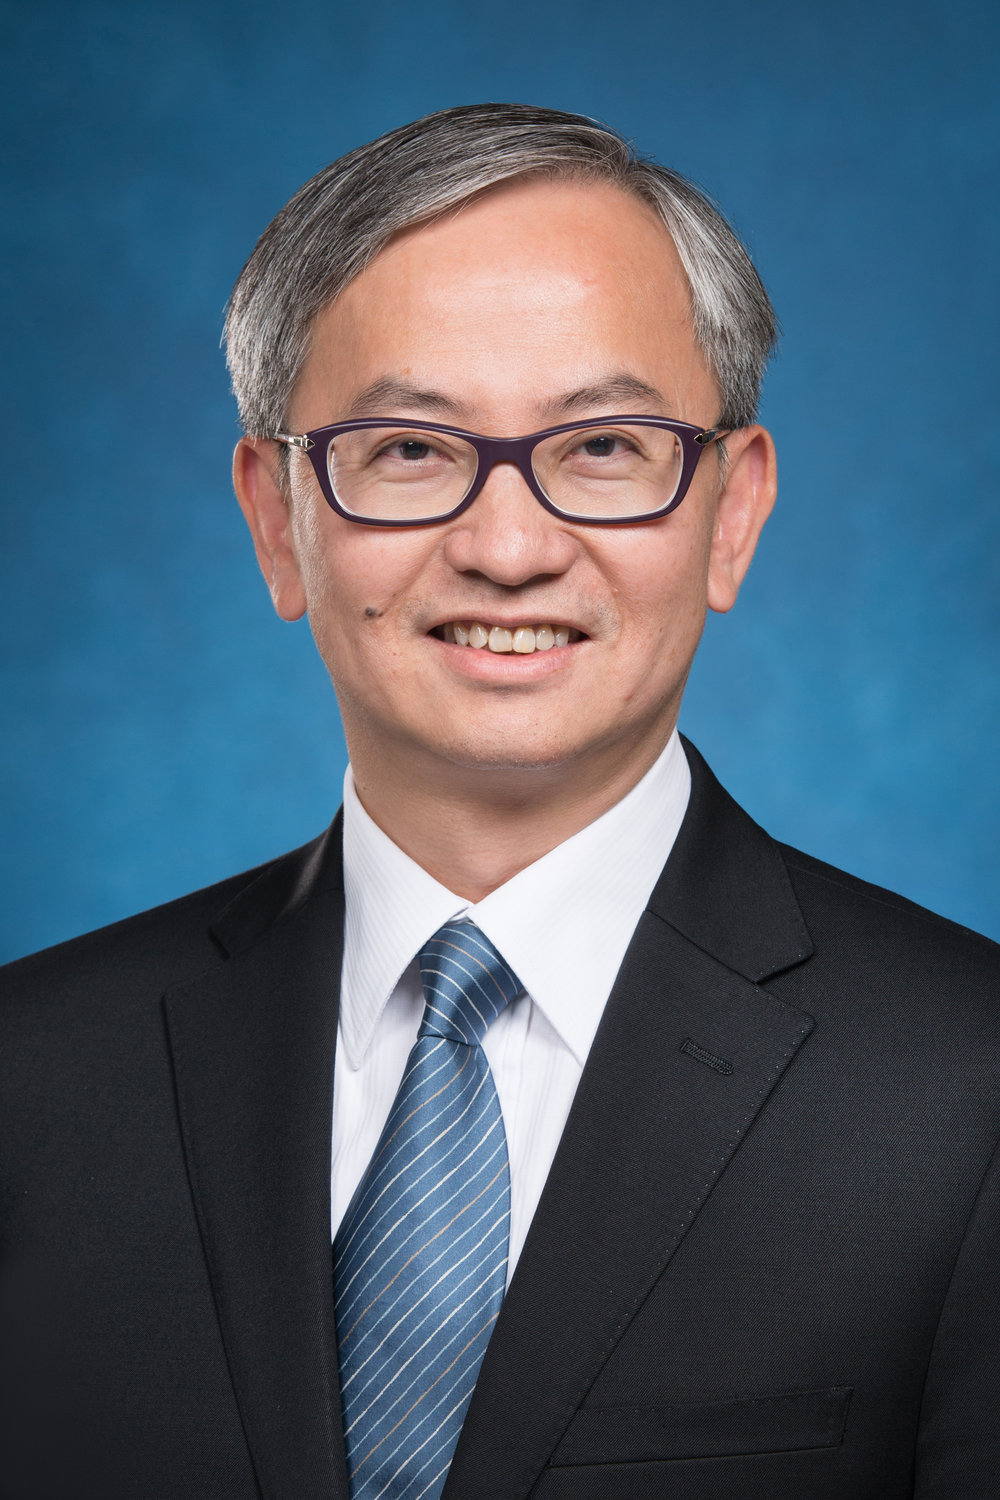 Dr. David Chung ,Under Secretary for Innovation and Technology, InvestHK